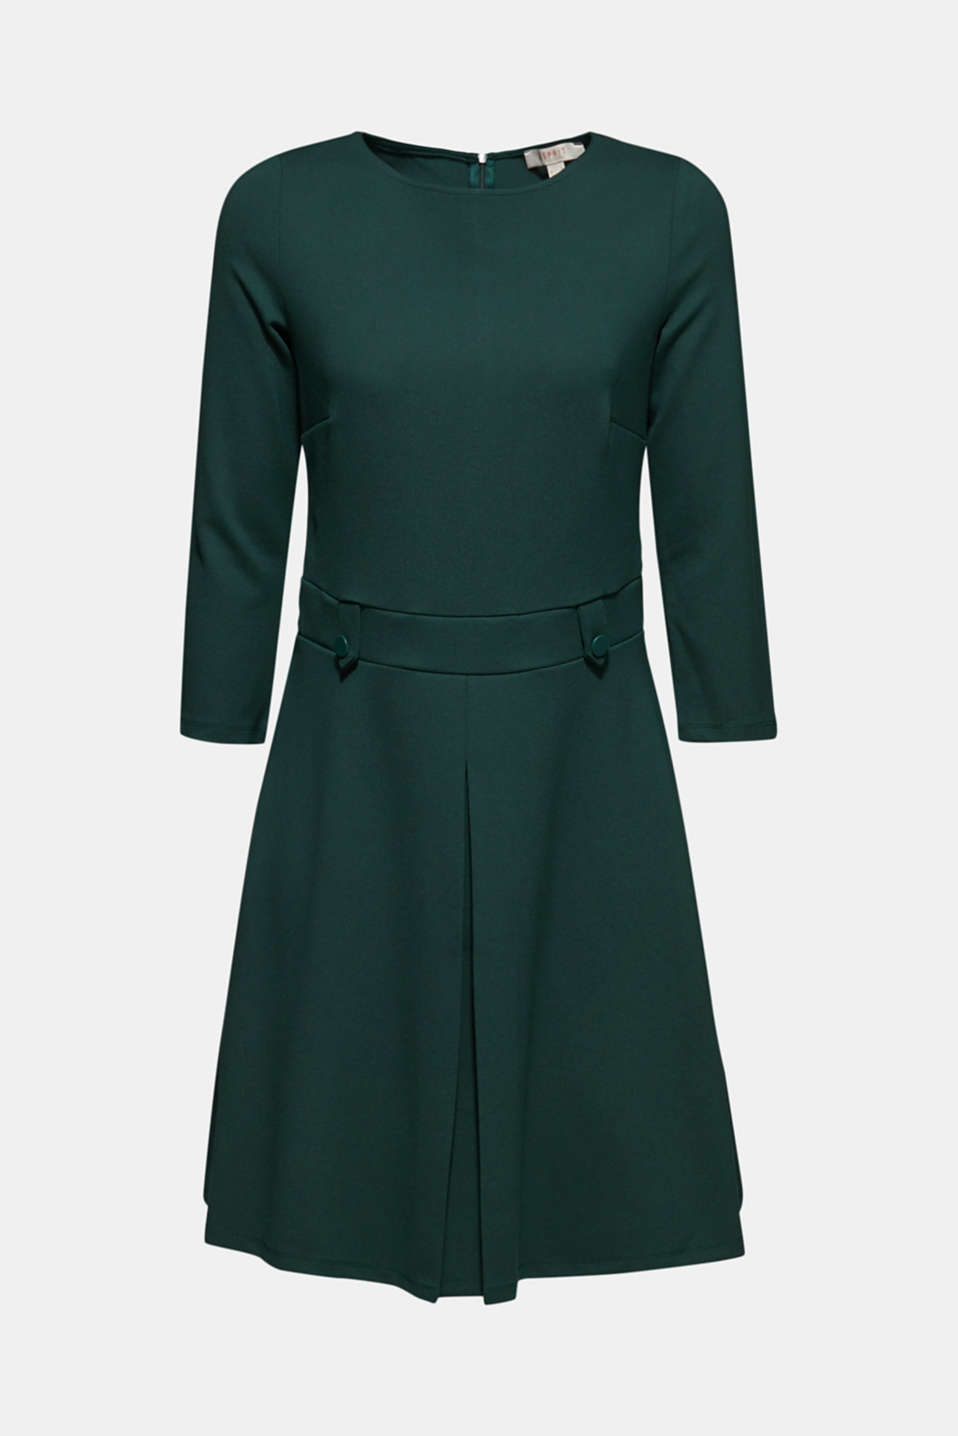 Flared dress made of stretch jersey, DARK TEAL GREEN, detail image number 6